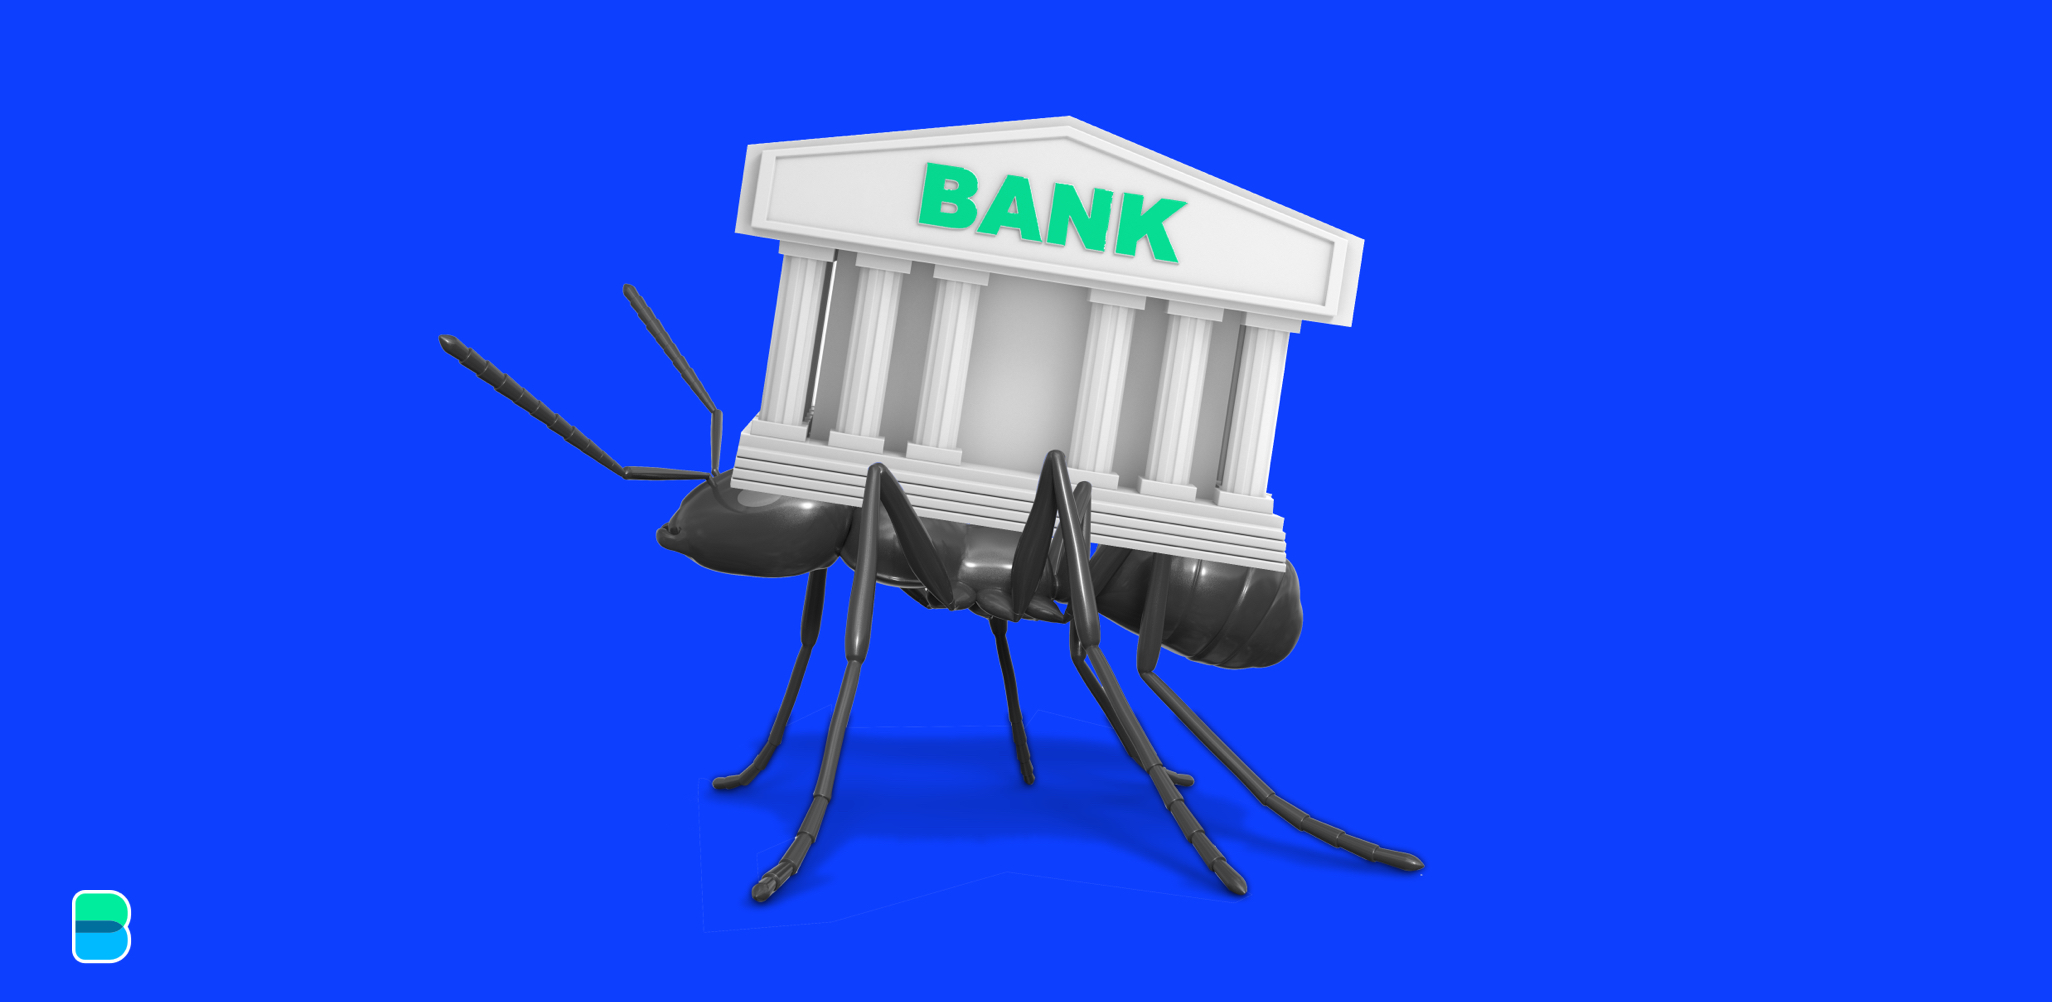 Ant Group eyeing bank-like structure that could dampen profits